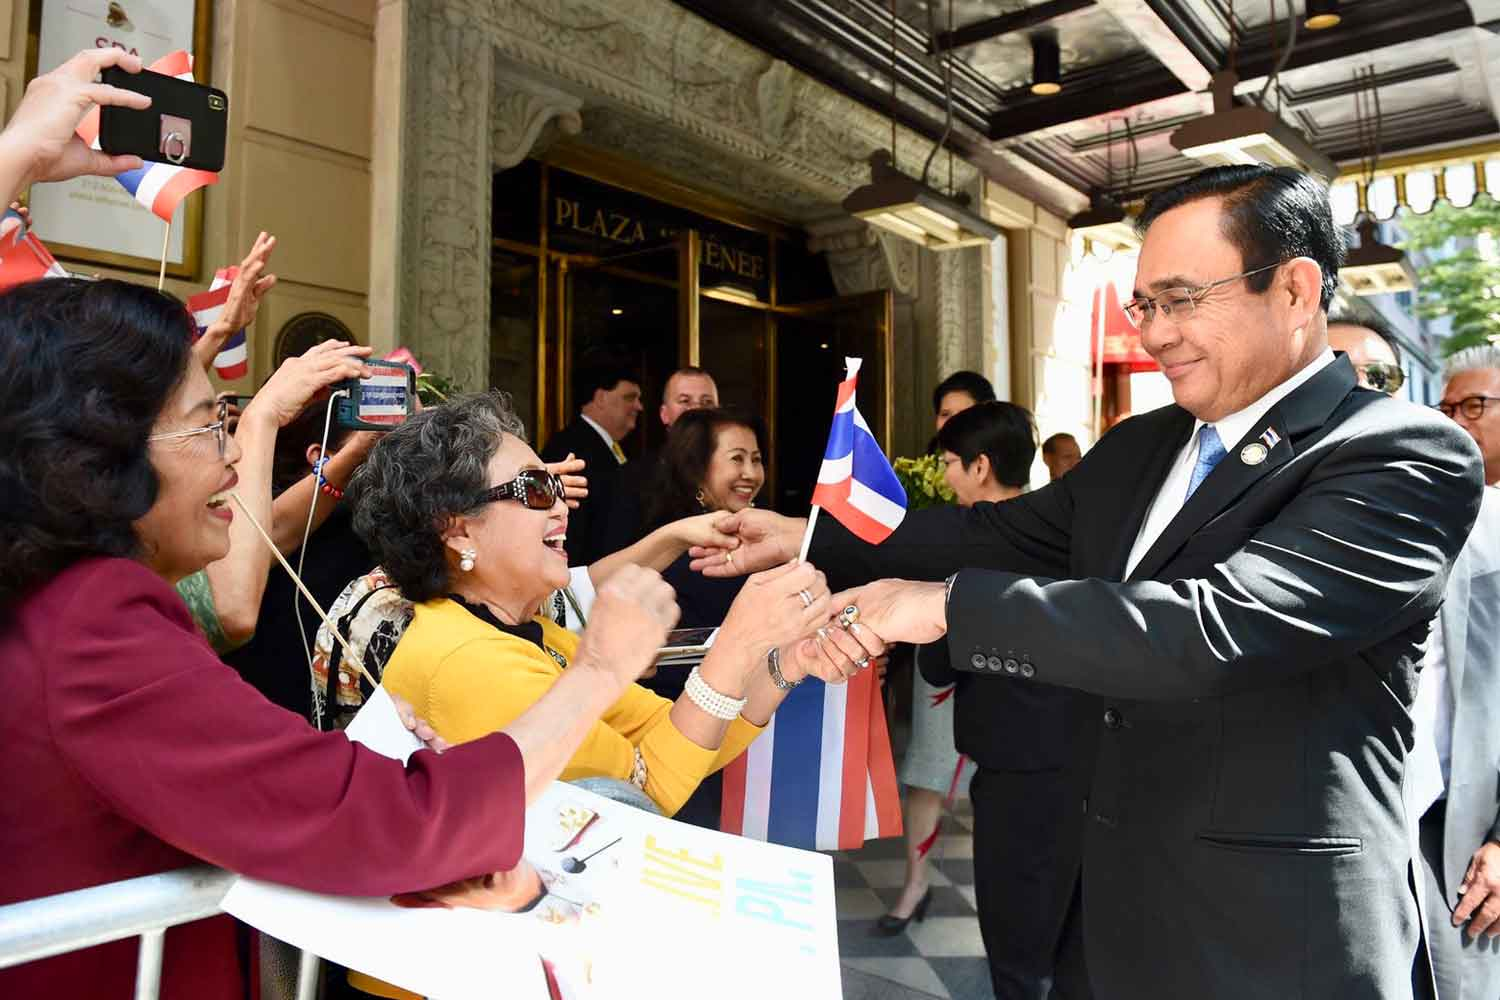 Prime Minister Prayut Chan-o-cha meets representatives of the Thai community in the US, in front of the Plaza Athenee Hotel in New York on Sunday. (Photo and video supplied)